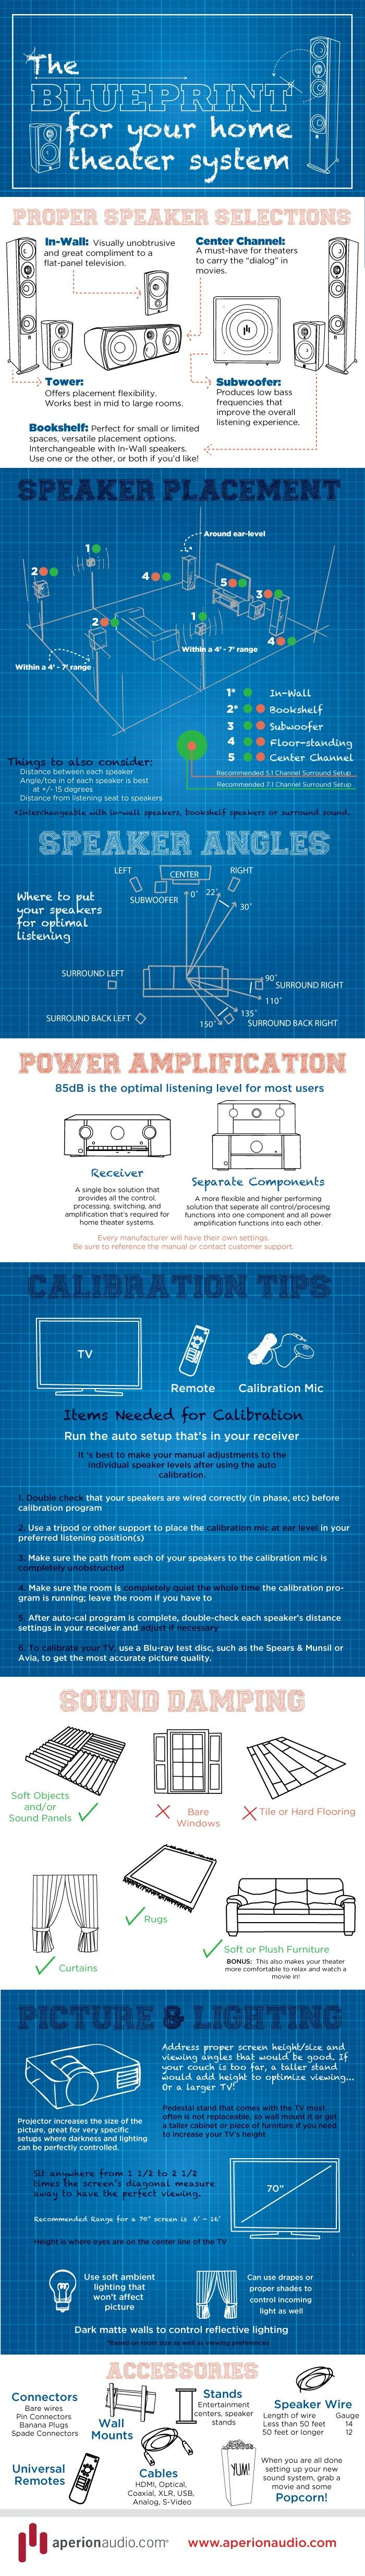 39 best TV Cabinet Wiring images on Pinterest | Technology, Amp and ...